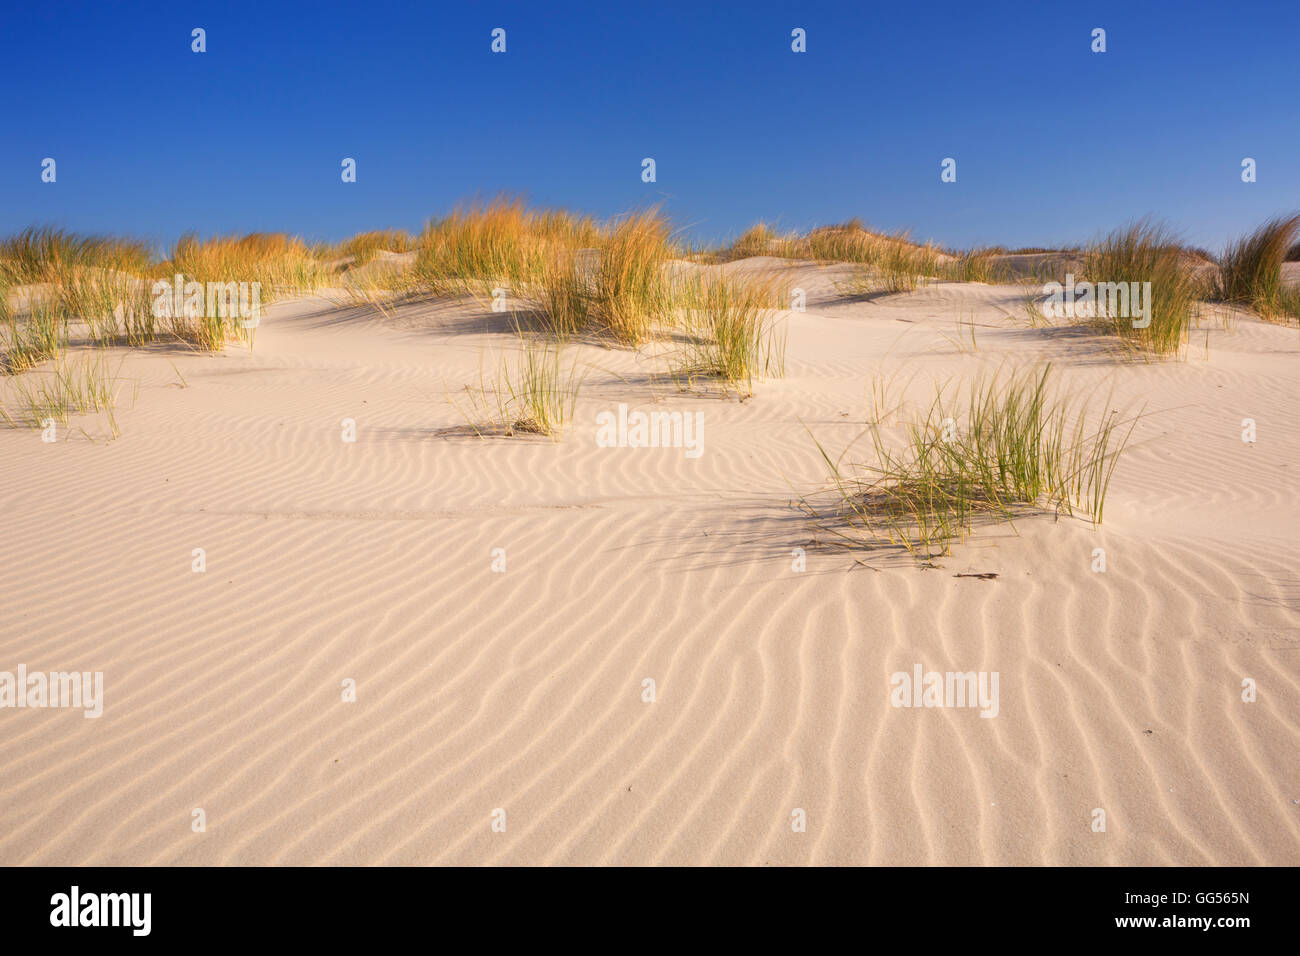 Sand dunes with ripples on the Dutch island of Terschelling on a bright and sunny day. - Stock Image